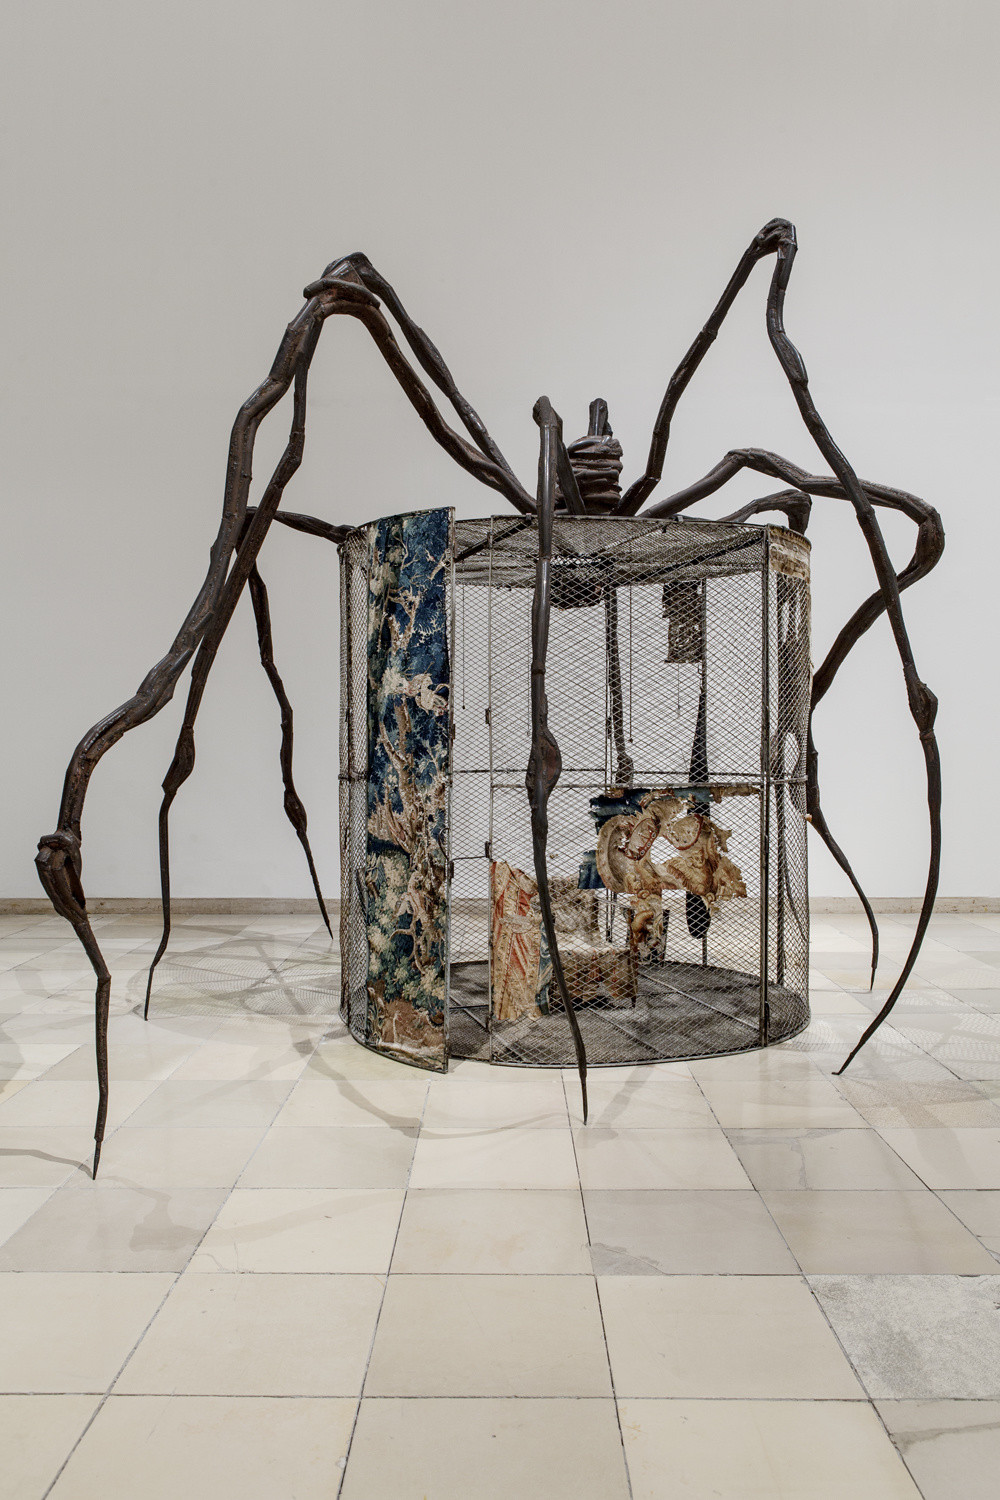 _Spider (Cell),_ 1997. Steel, tapestry, wood, glass, fabric, rubber, silver, gold, and bone. Collection The Easton Foundation, New York. © 2017 The Easton Foundation/Licensed by VAGA, NY. LN2017.737